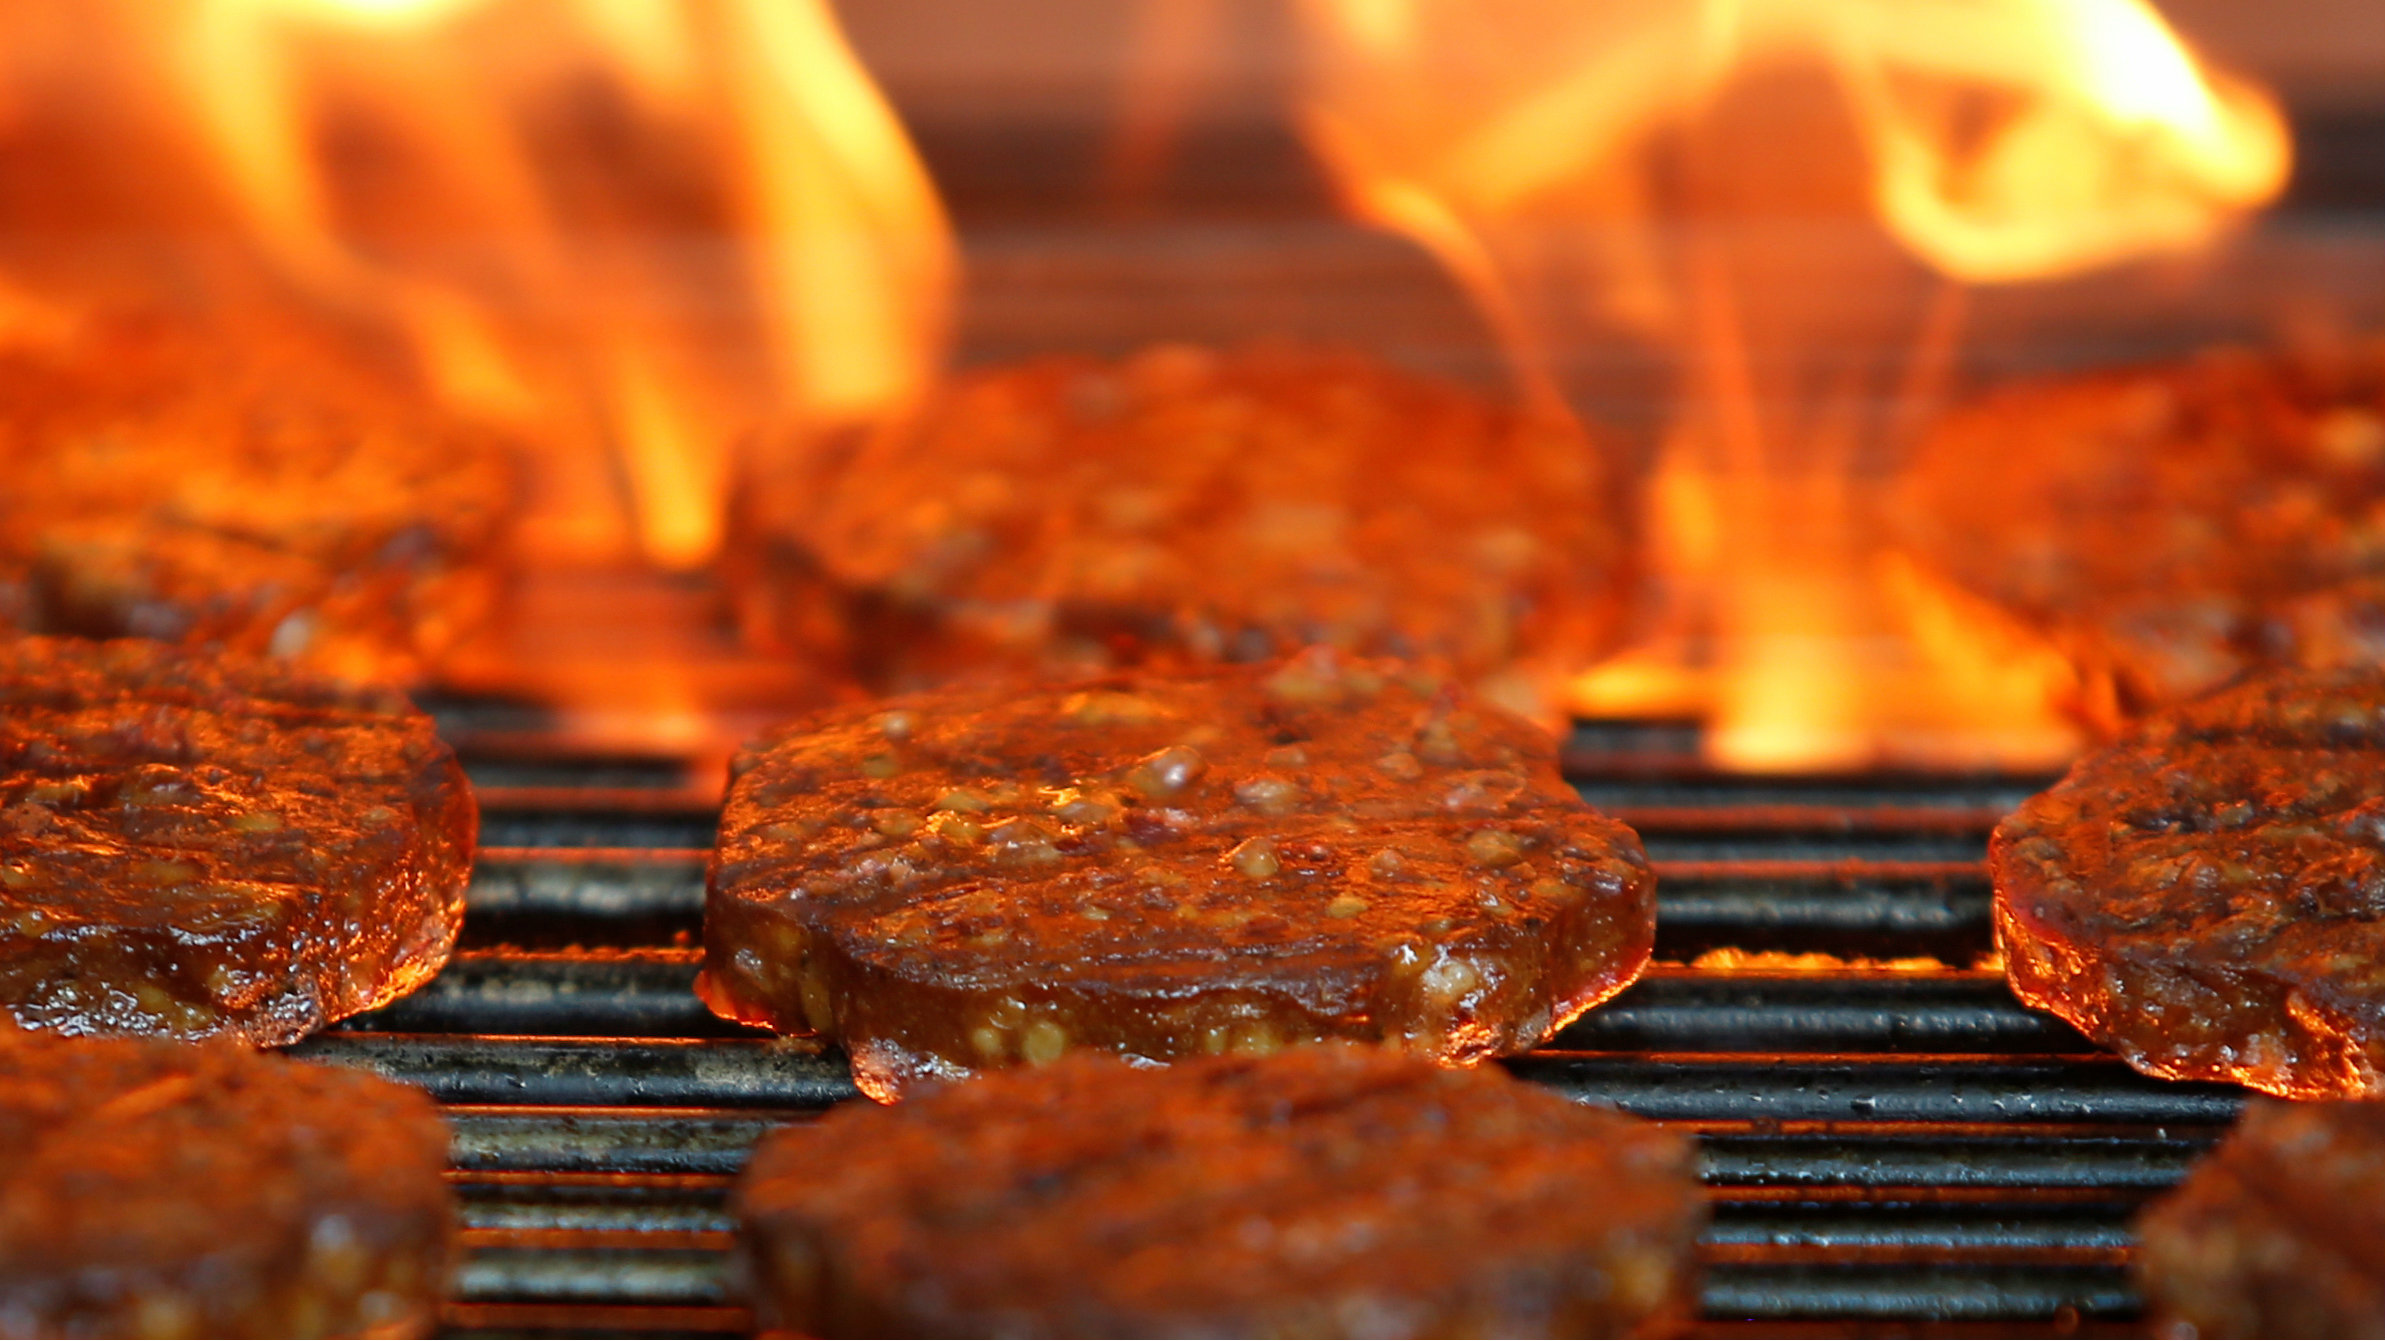 Burgers are cooked over a flame on a grill